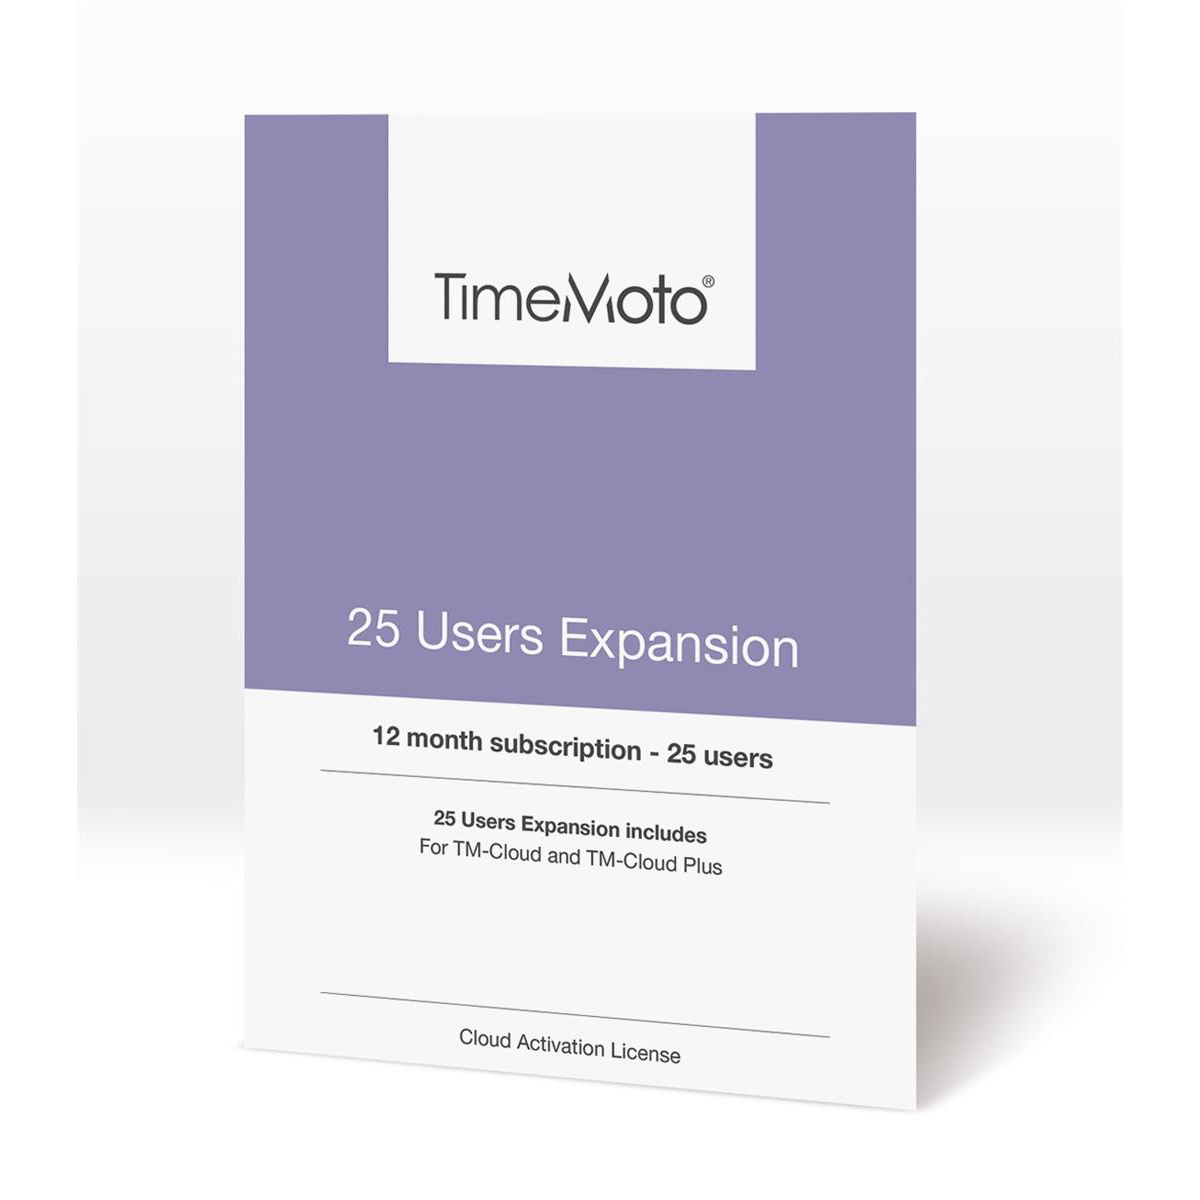 Safescan TimeMoto TM Cloud User Expansion 25 Users Ref 139-0592